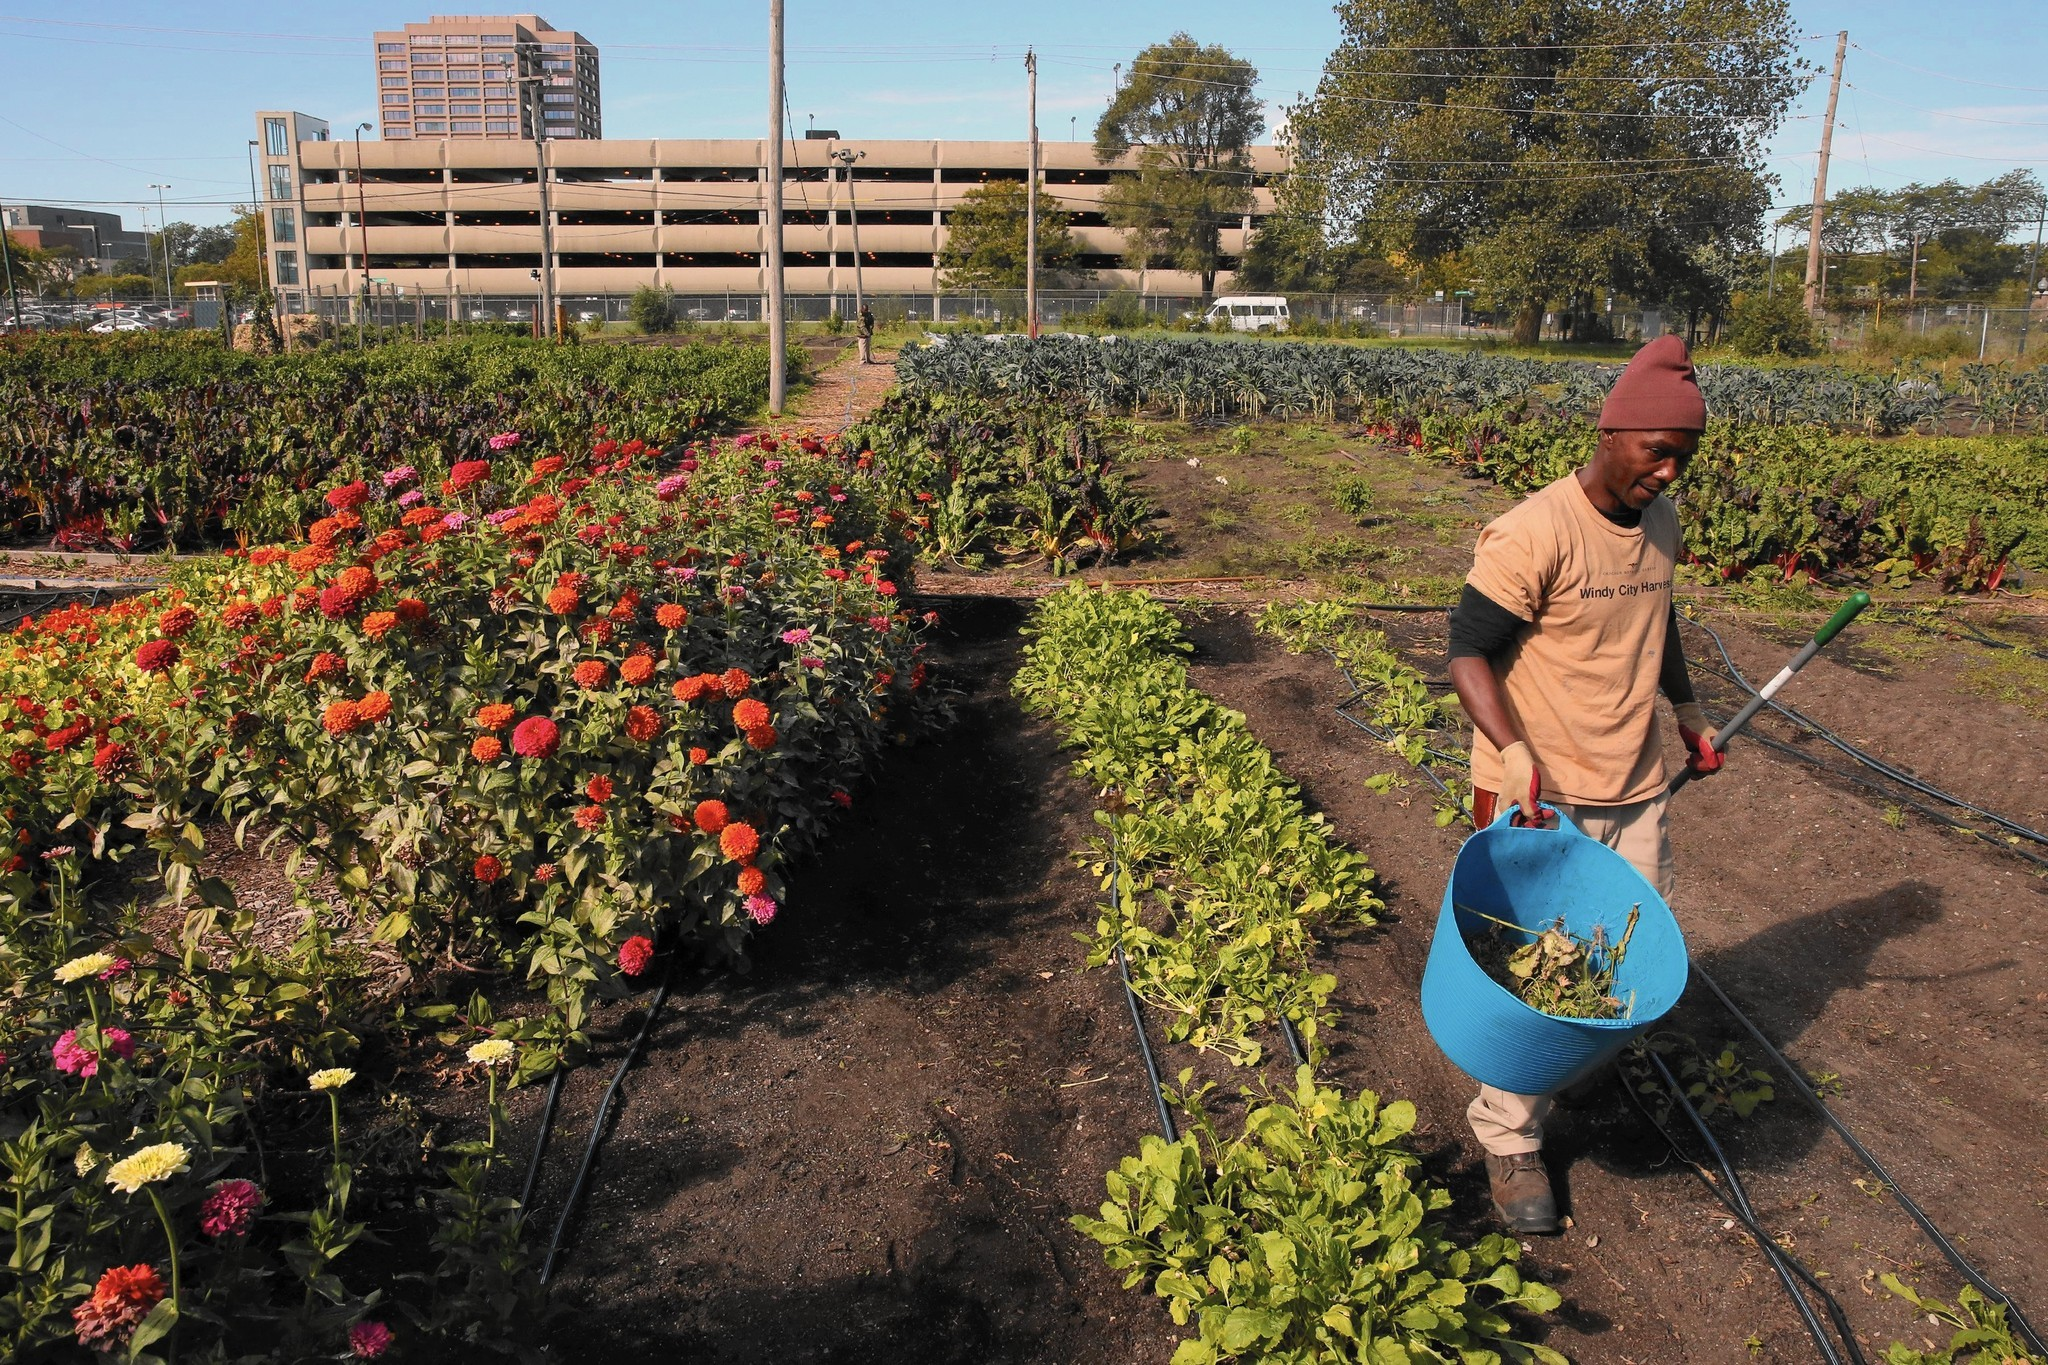 Growing Chicago: A flourishing city in a garden - Chicago Tribune